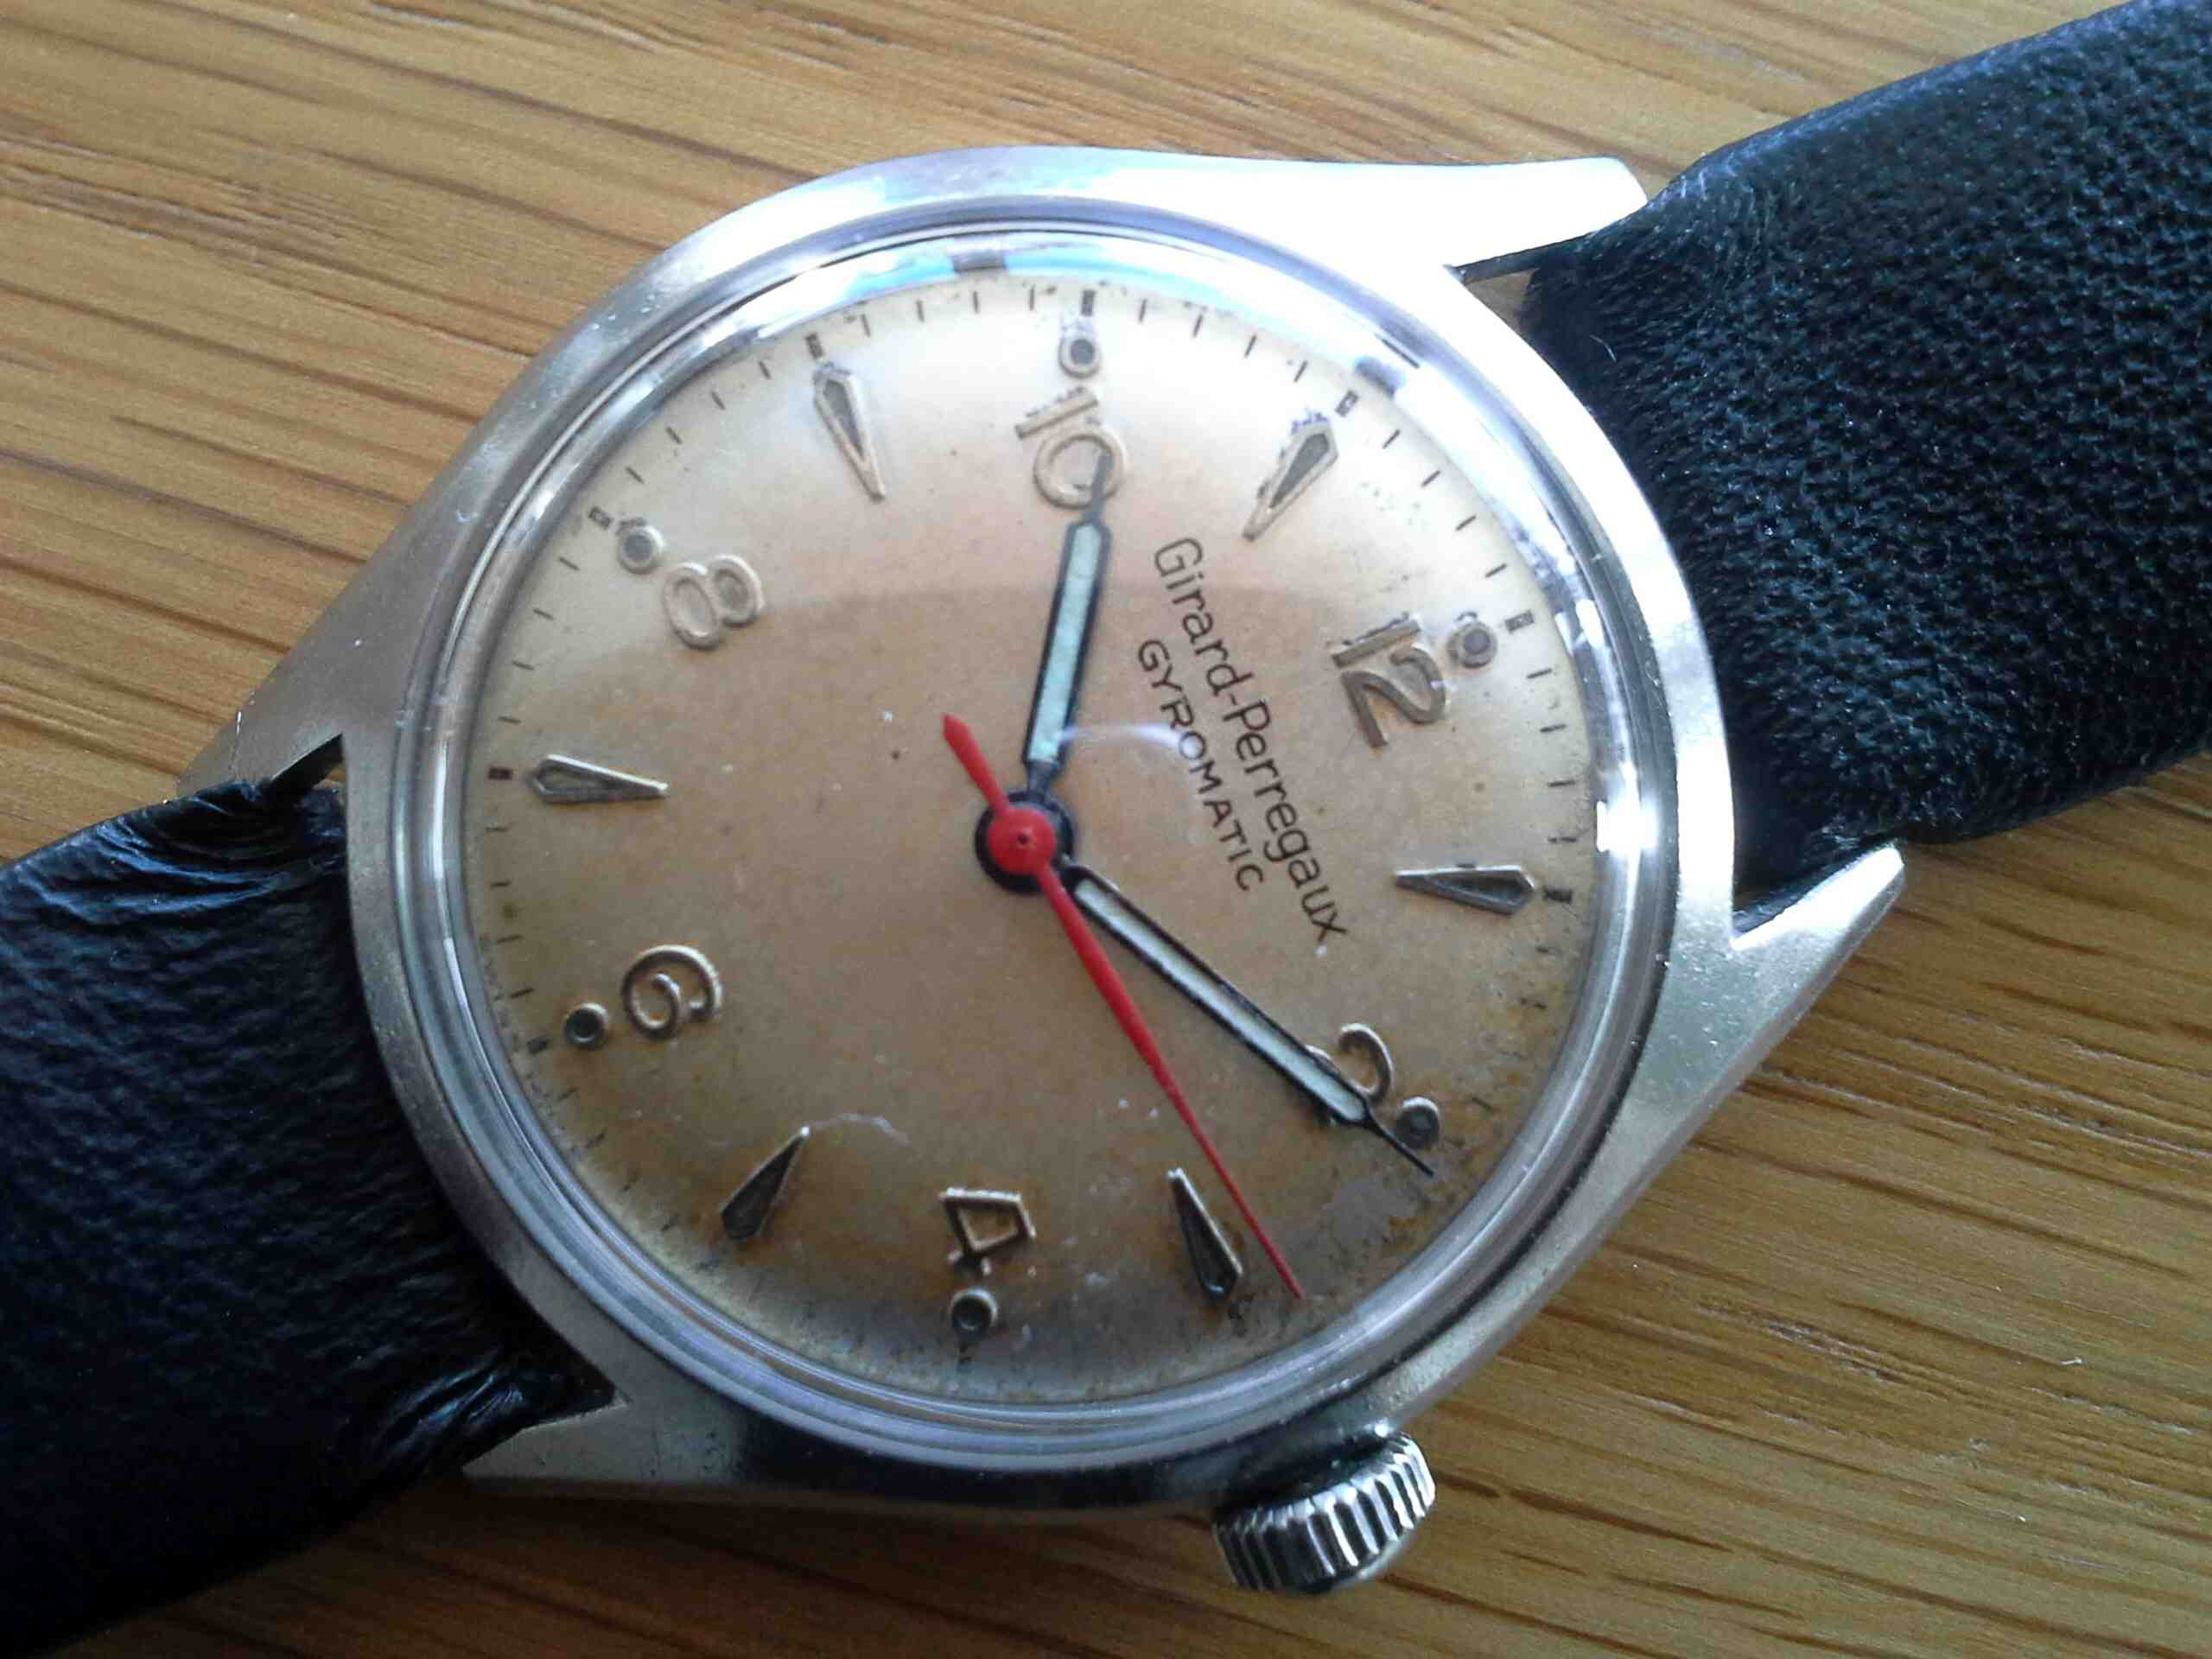 calibre watch blind dh the for watches guy mitka author img helvetia blinds